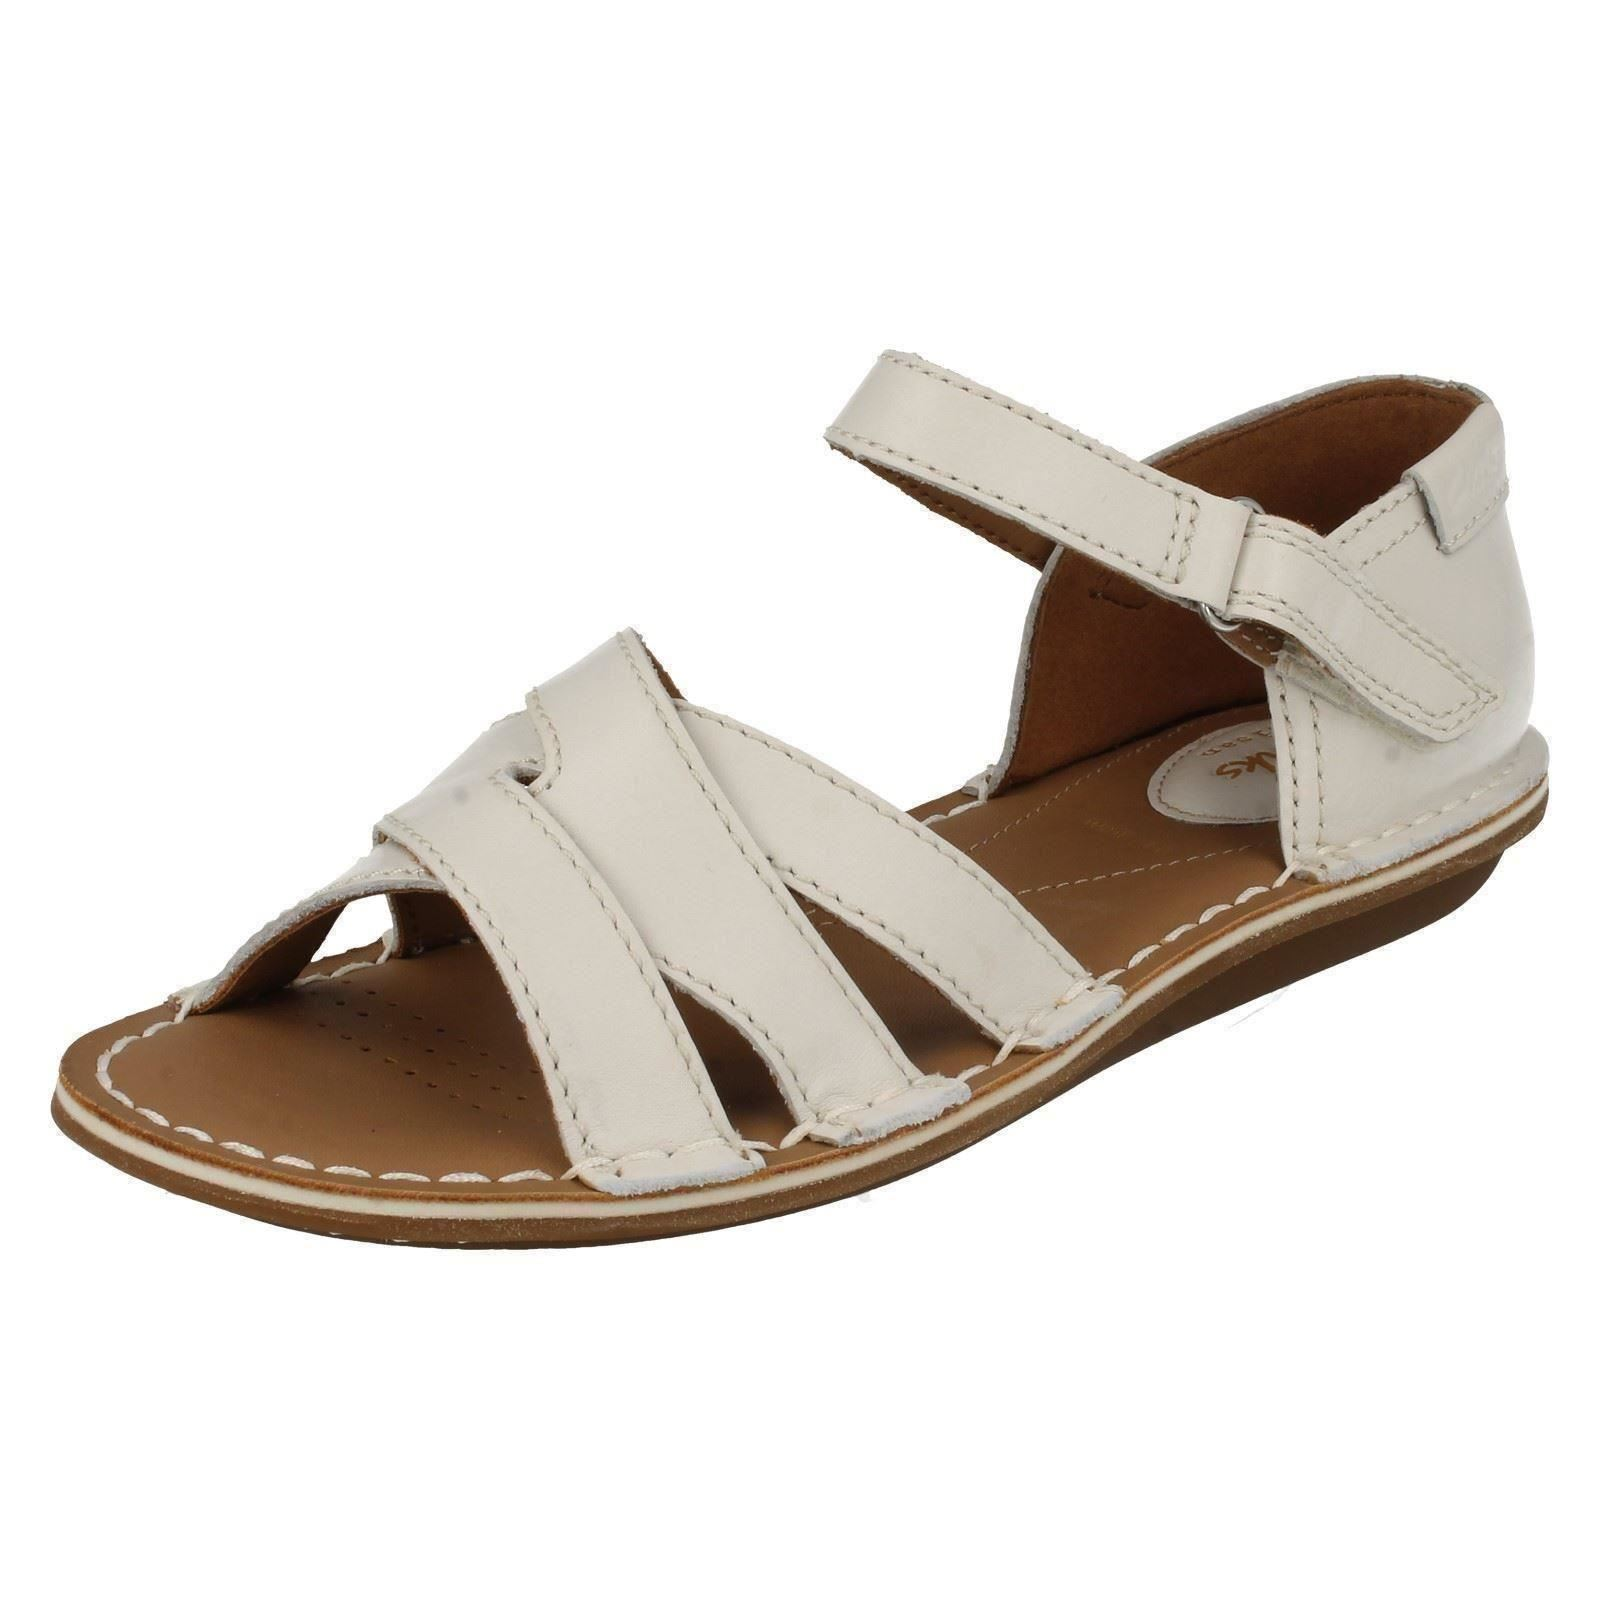 b53f3ff838a7 Ladies Clarks Tustin Sahara Leather Casual Sandals E Fitting UK 8 off White.  About this product. Picture 1 of 9  Picture 2 of 9 ...